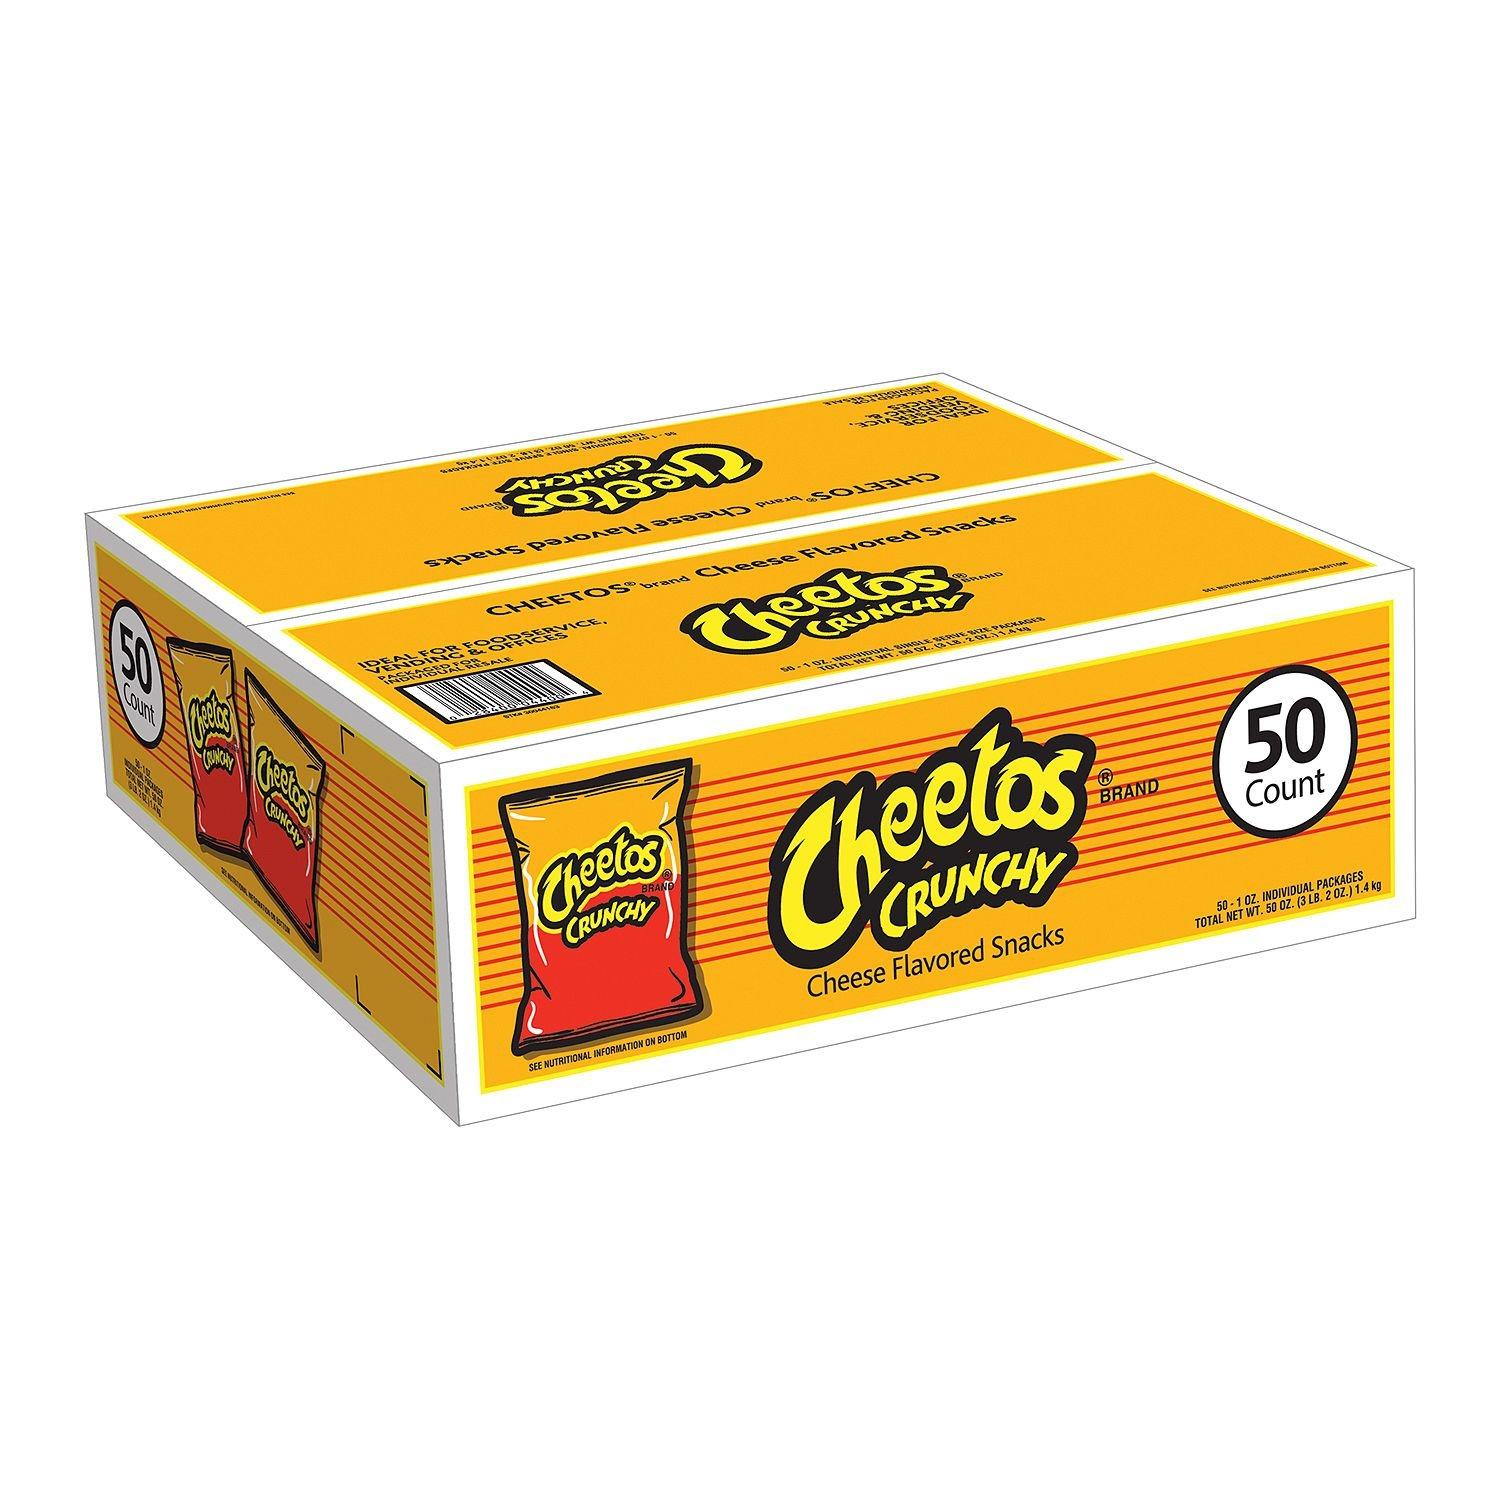 Cheetos Crunchy Challenge the lowest price of Japan ☆ 1 Award oz. 50 2 ct. pack